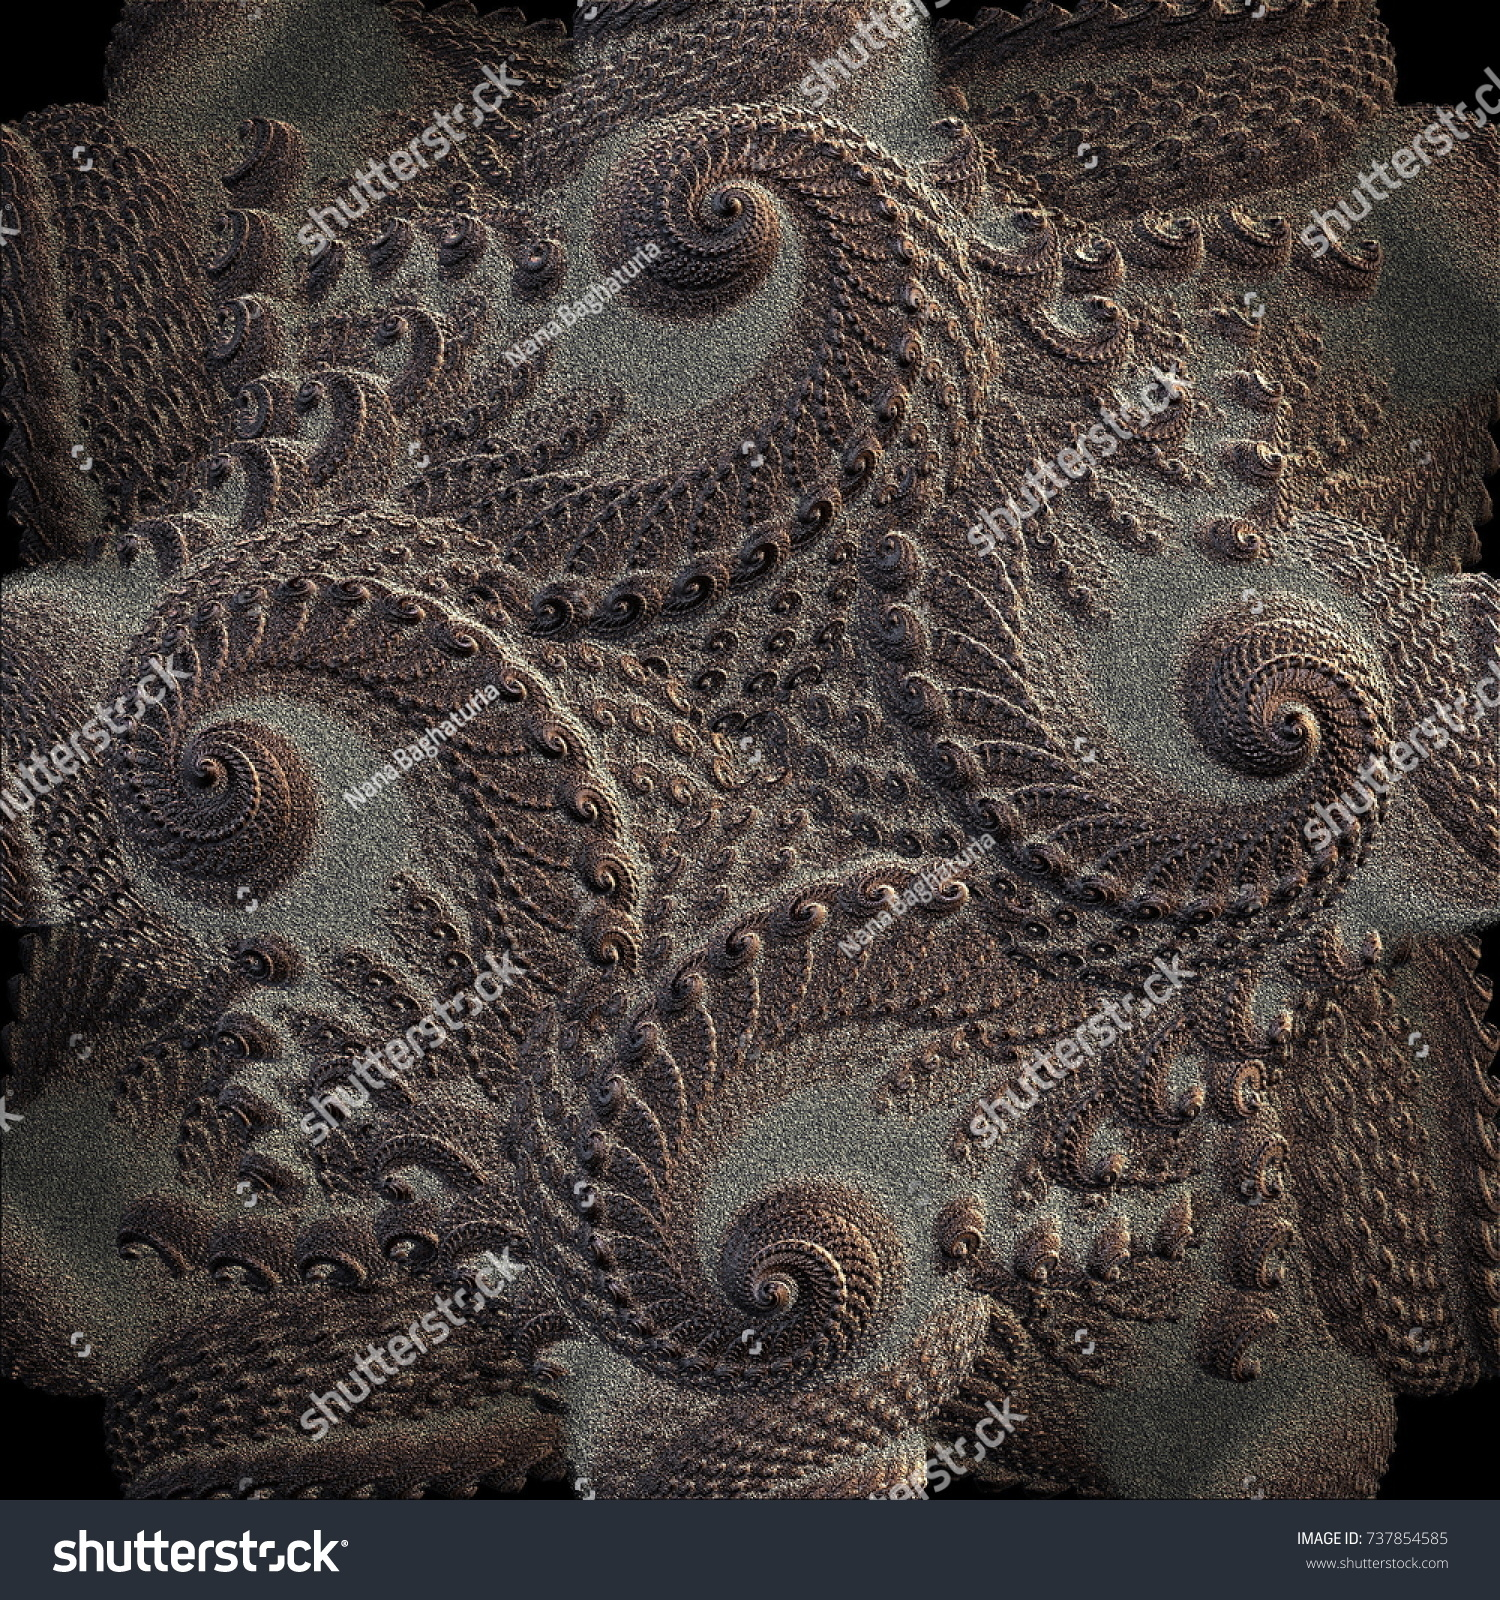 Composition Book Cover Background ~ Spirals dimensional abstract composition background stock